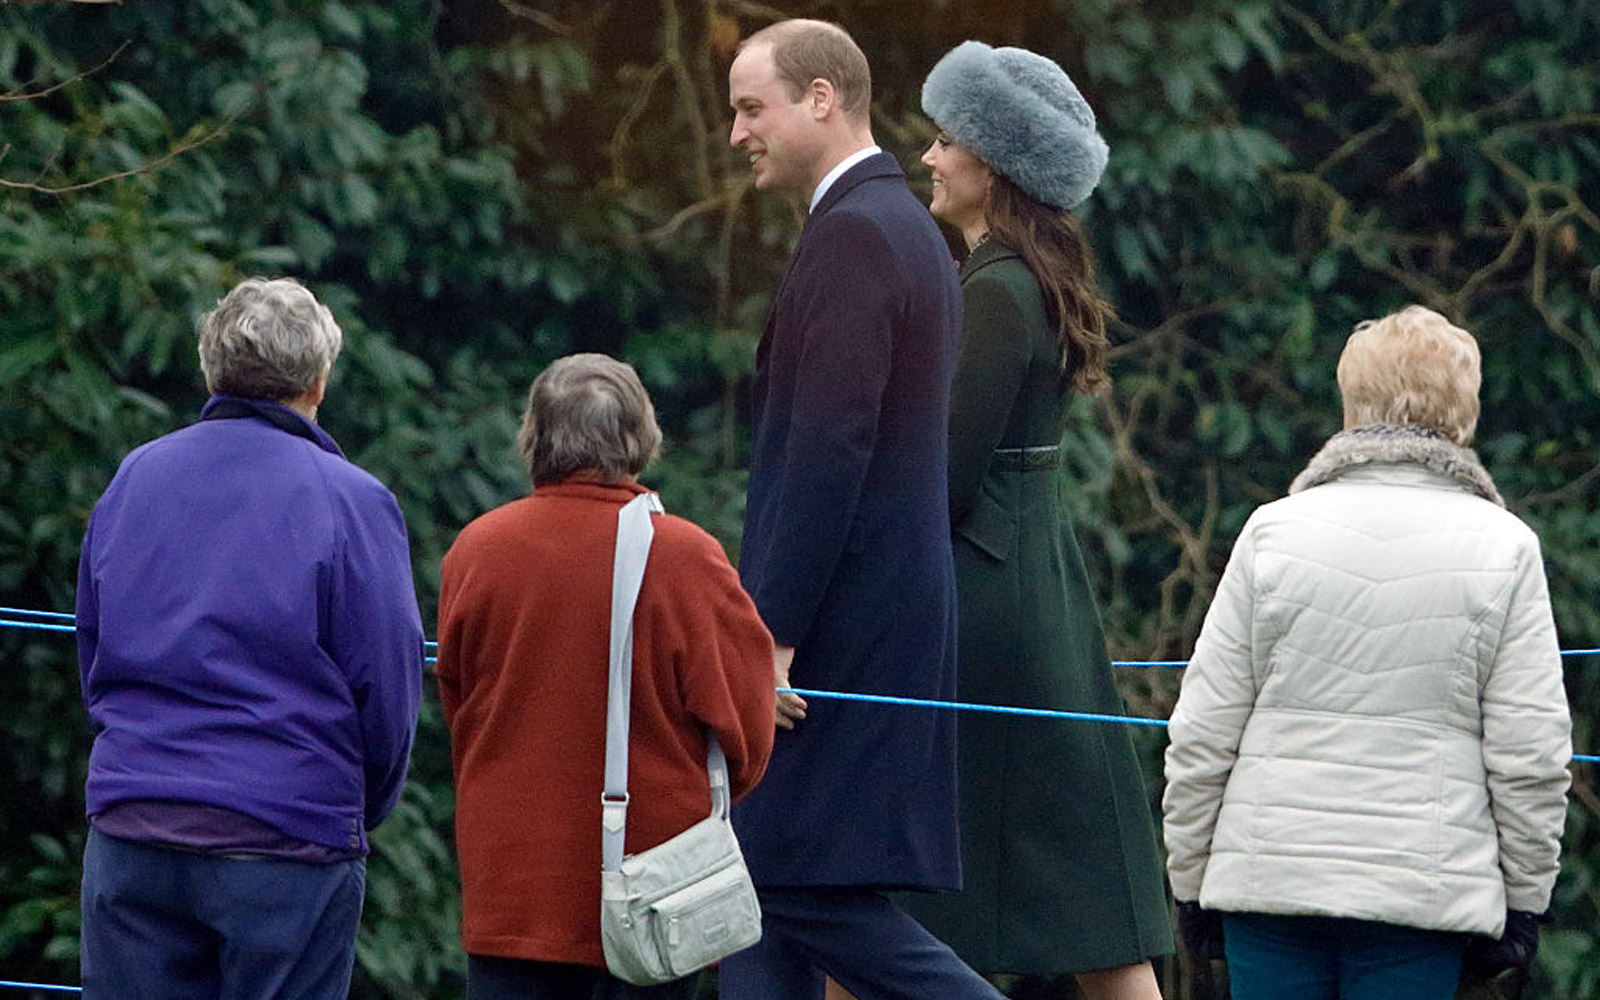 KING'S LYNN, UNITED KINGDOM - JANUARY 08: (EMBARGOED FOR PUBLICATION IN UK NEWSPAPERS UNTIL 48 HOURS AFTER CREATE DATE AND TIME) Prince William, Duke of Cambridge and Catherine, Duchess of Cambridge attend the Sunday service at St Mary Magdalene Church, S